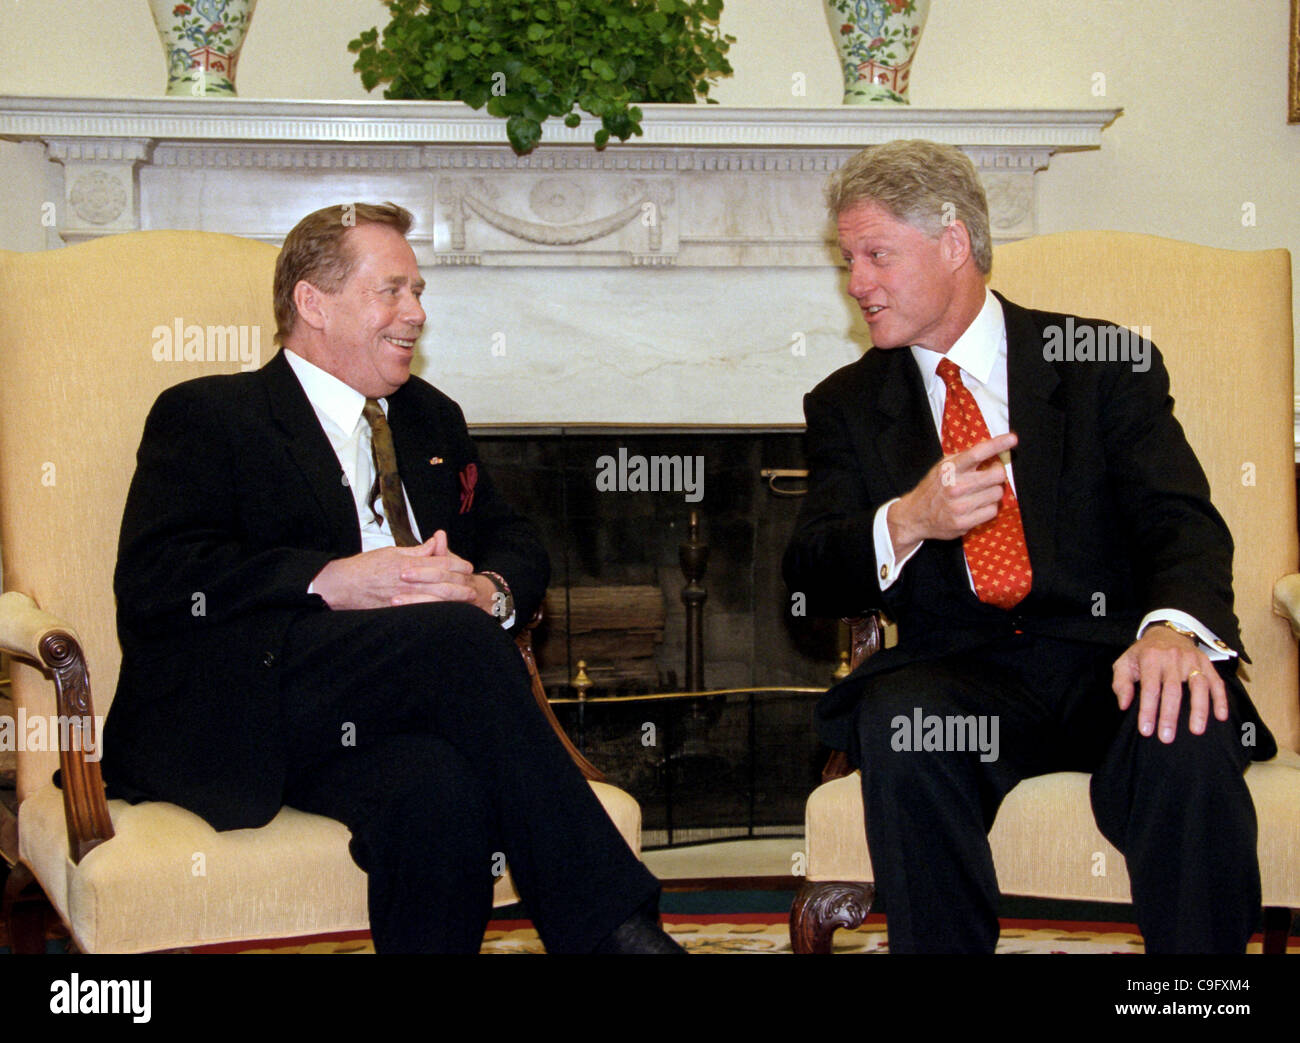 president bill clinton meets with czech president vaclav havel in the oval office of the white house september 16 1998 in washington dc bill clinton oval office